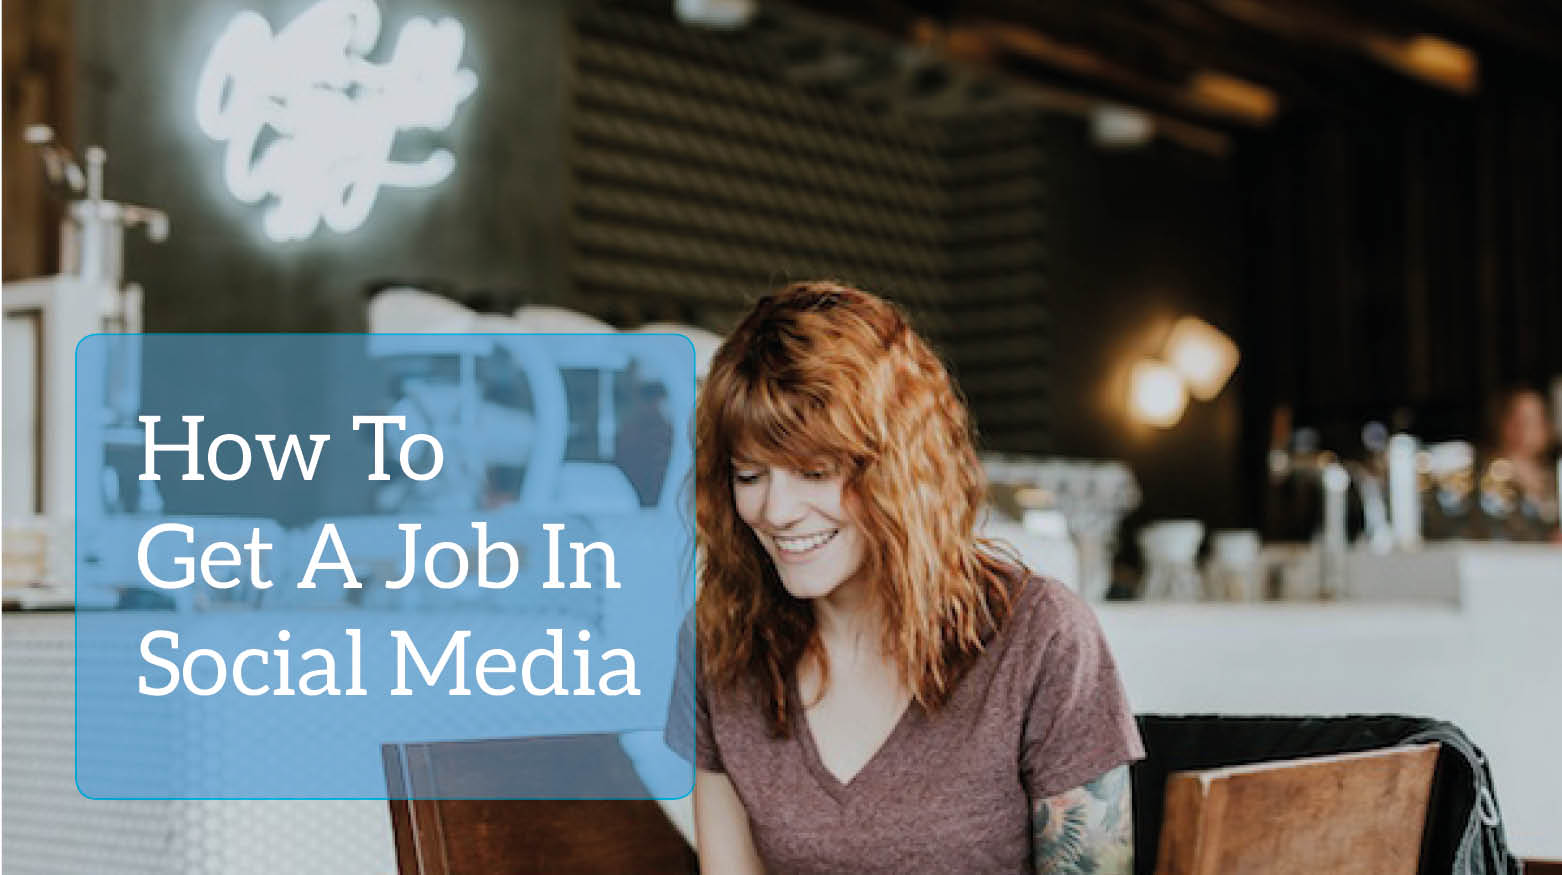 How to get a job in Social Media- Platforms turning around recruitment.